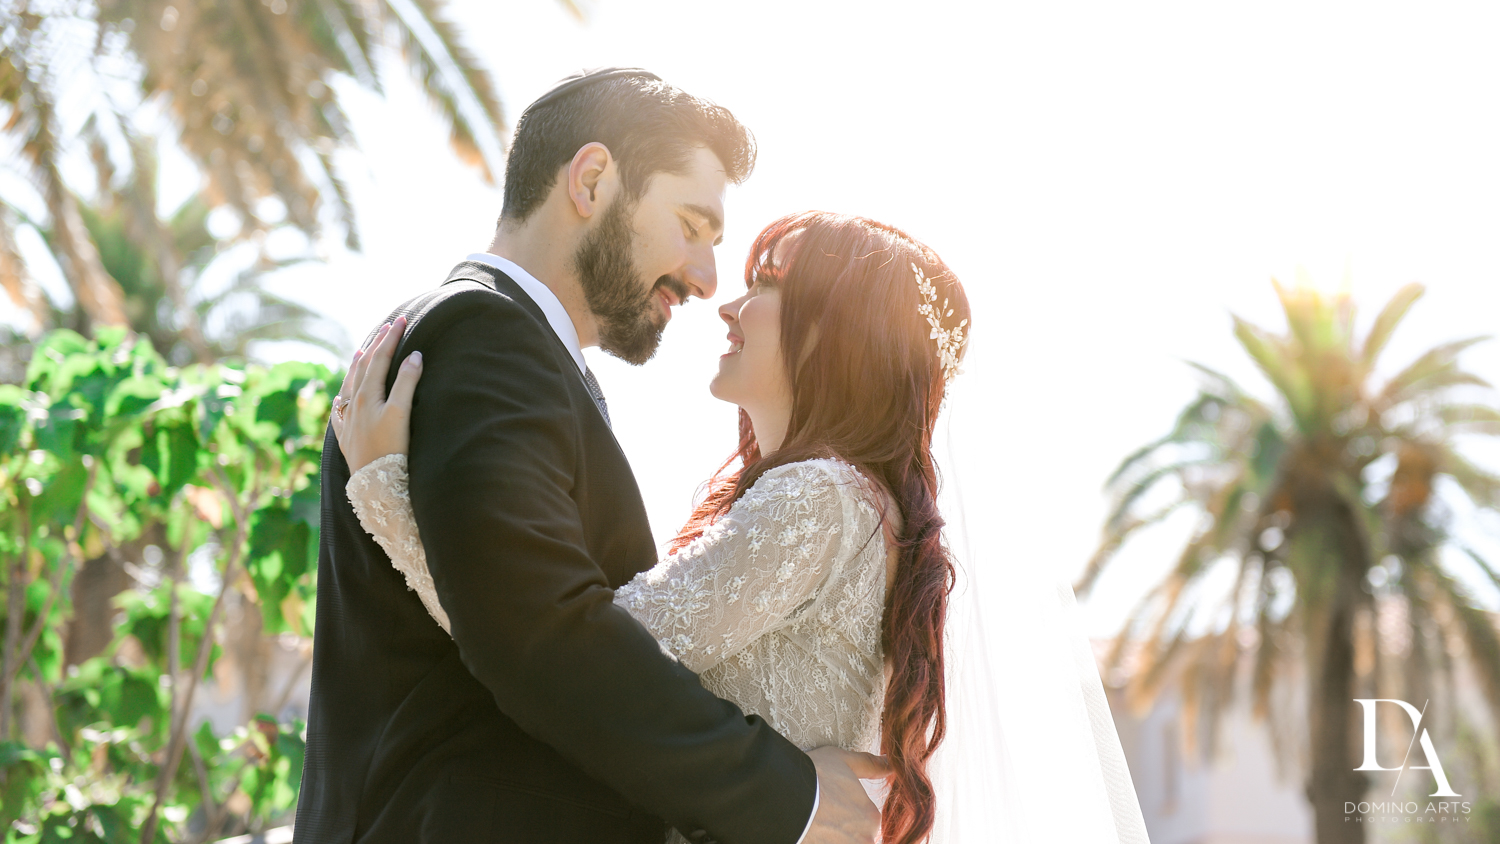 couple at Vintage Garden Wedding at Flagler Museum Palm Beach by Domino Arts Photography